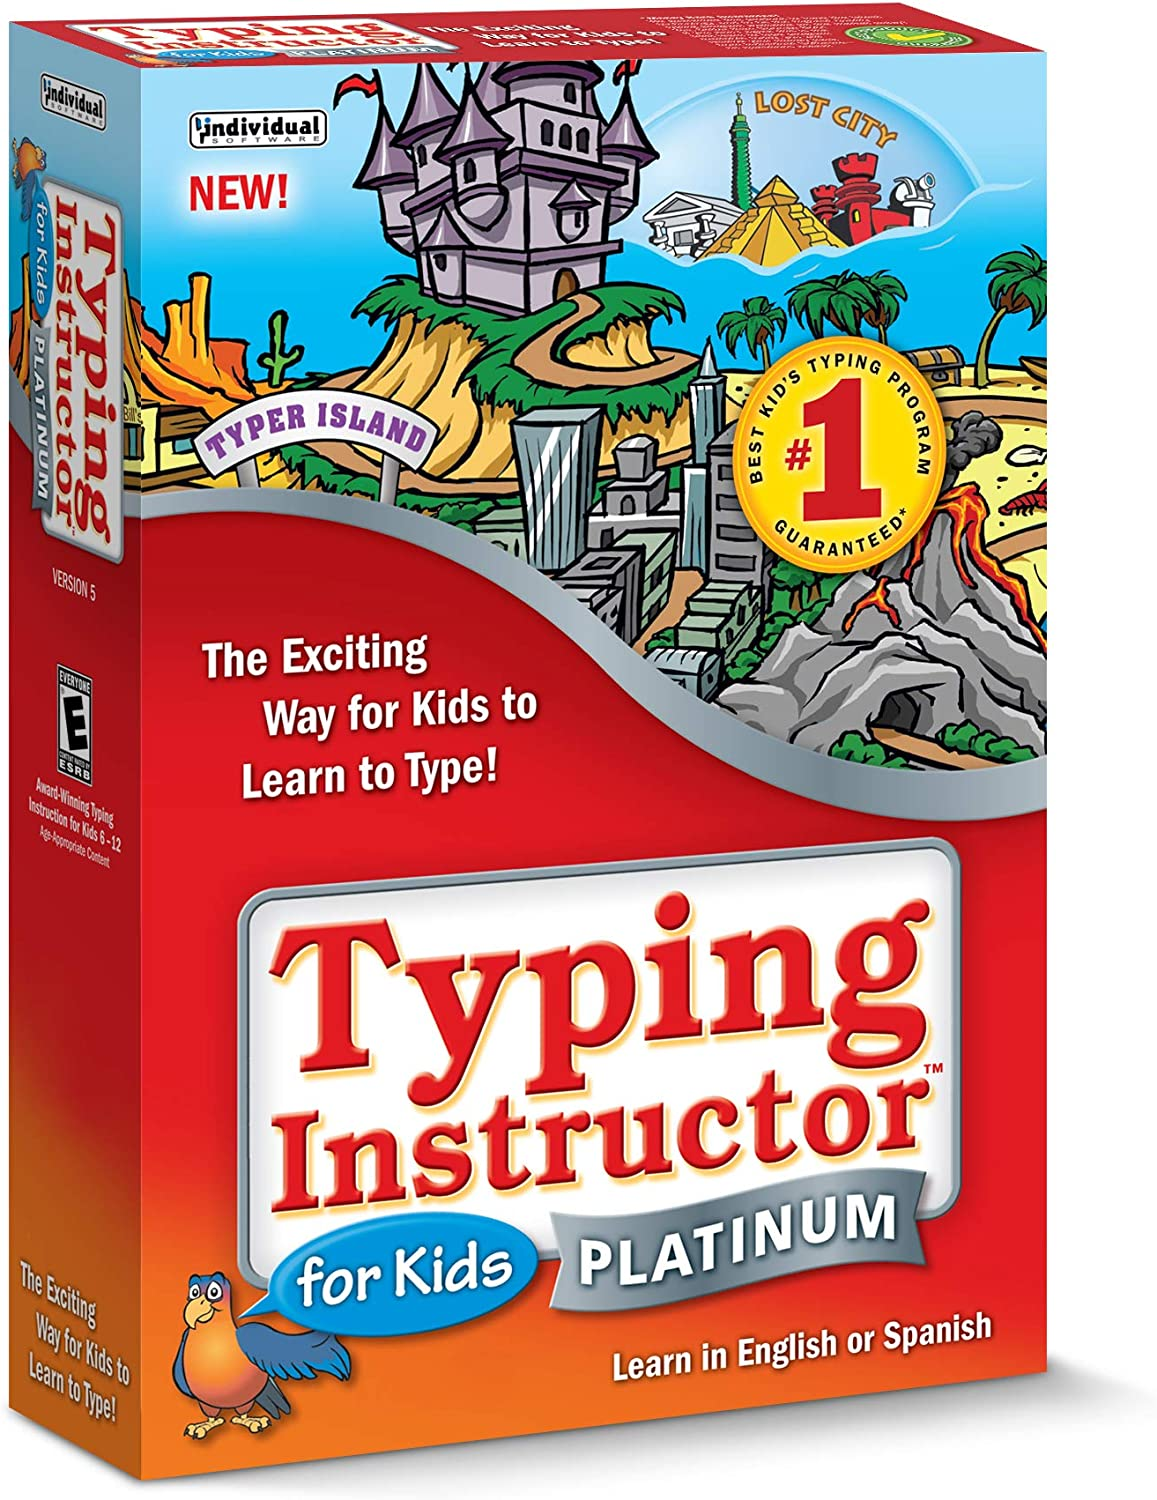 Typing Instructor Platinum 5 for Kids Discount Coupon Code